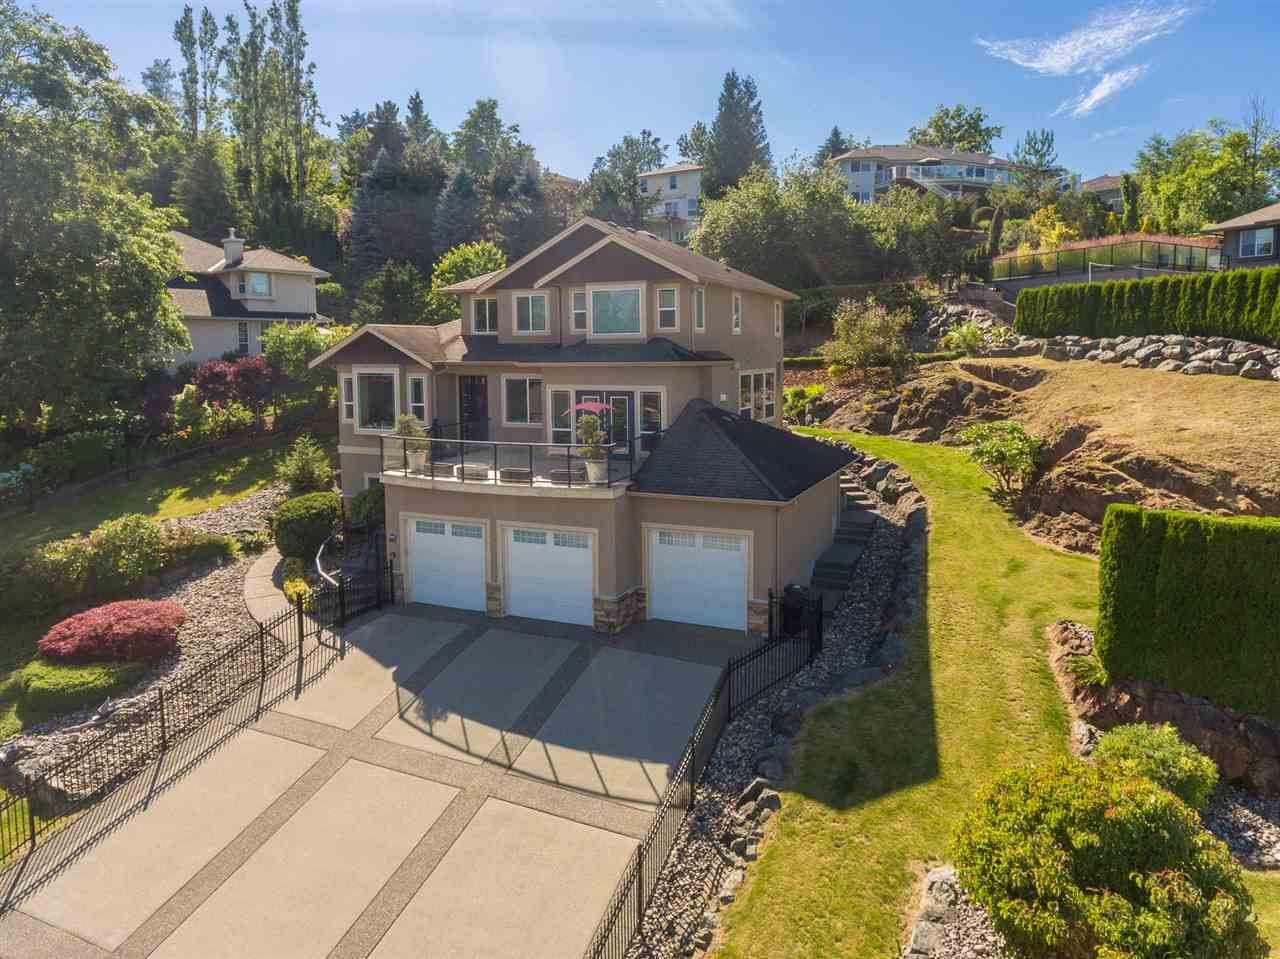 Main Photo: 8675 SUNBURST Place in Chilliwack: Chilliwack Mountain House for sale : MLS®# R2194271